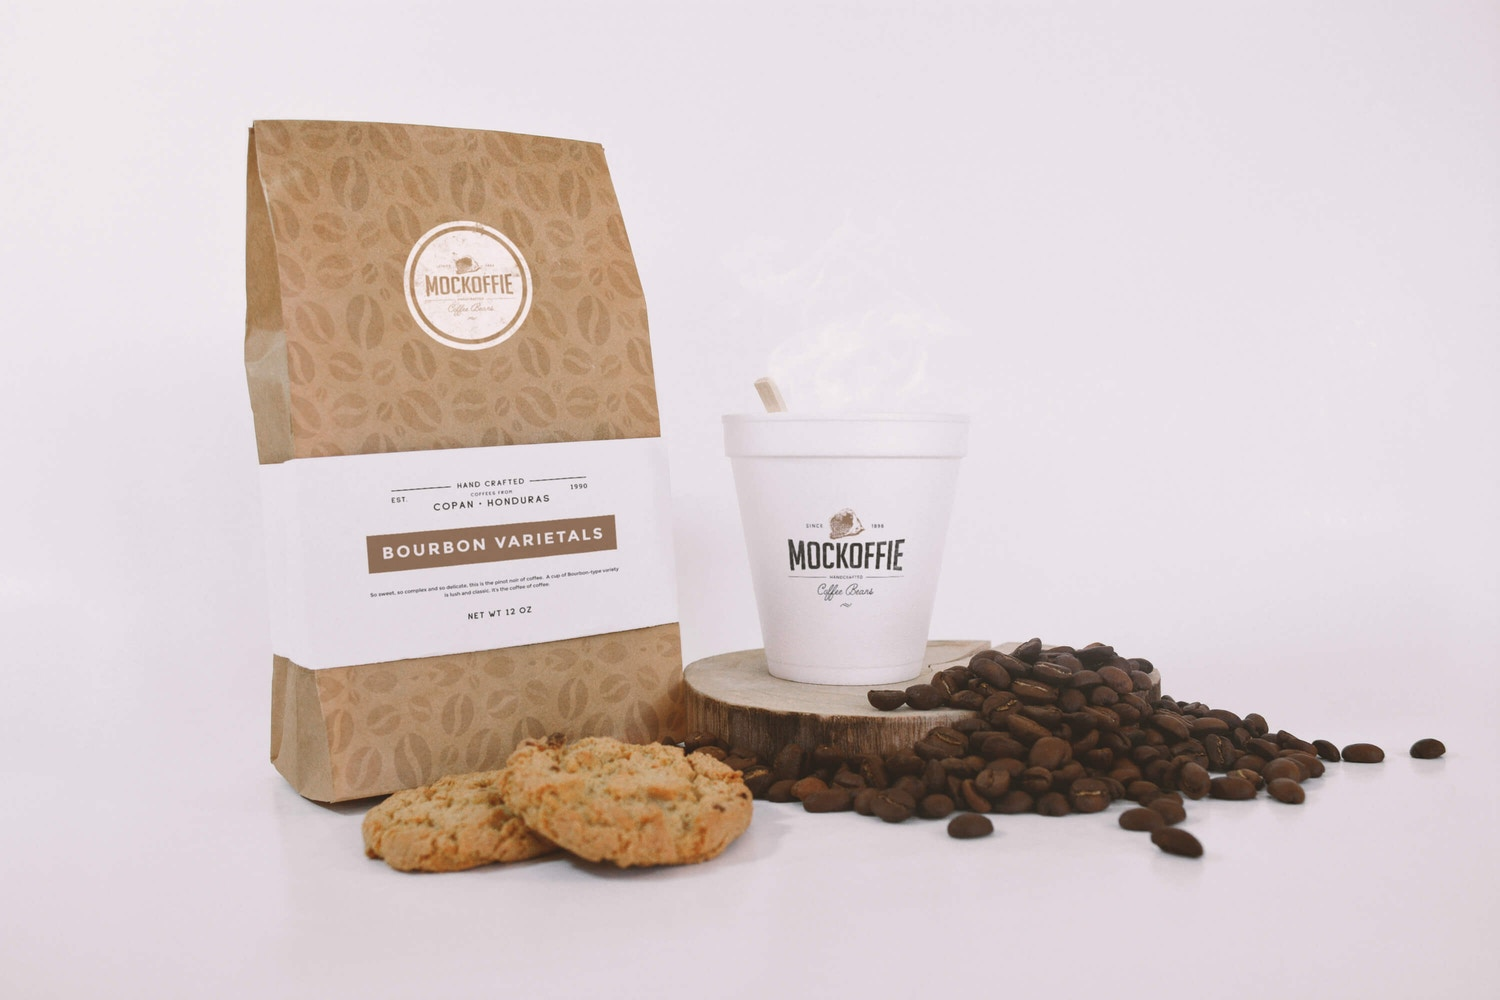 Coffee Bag and Cup Mockup With Cookies por Eduardo Mejia en Original Mockups